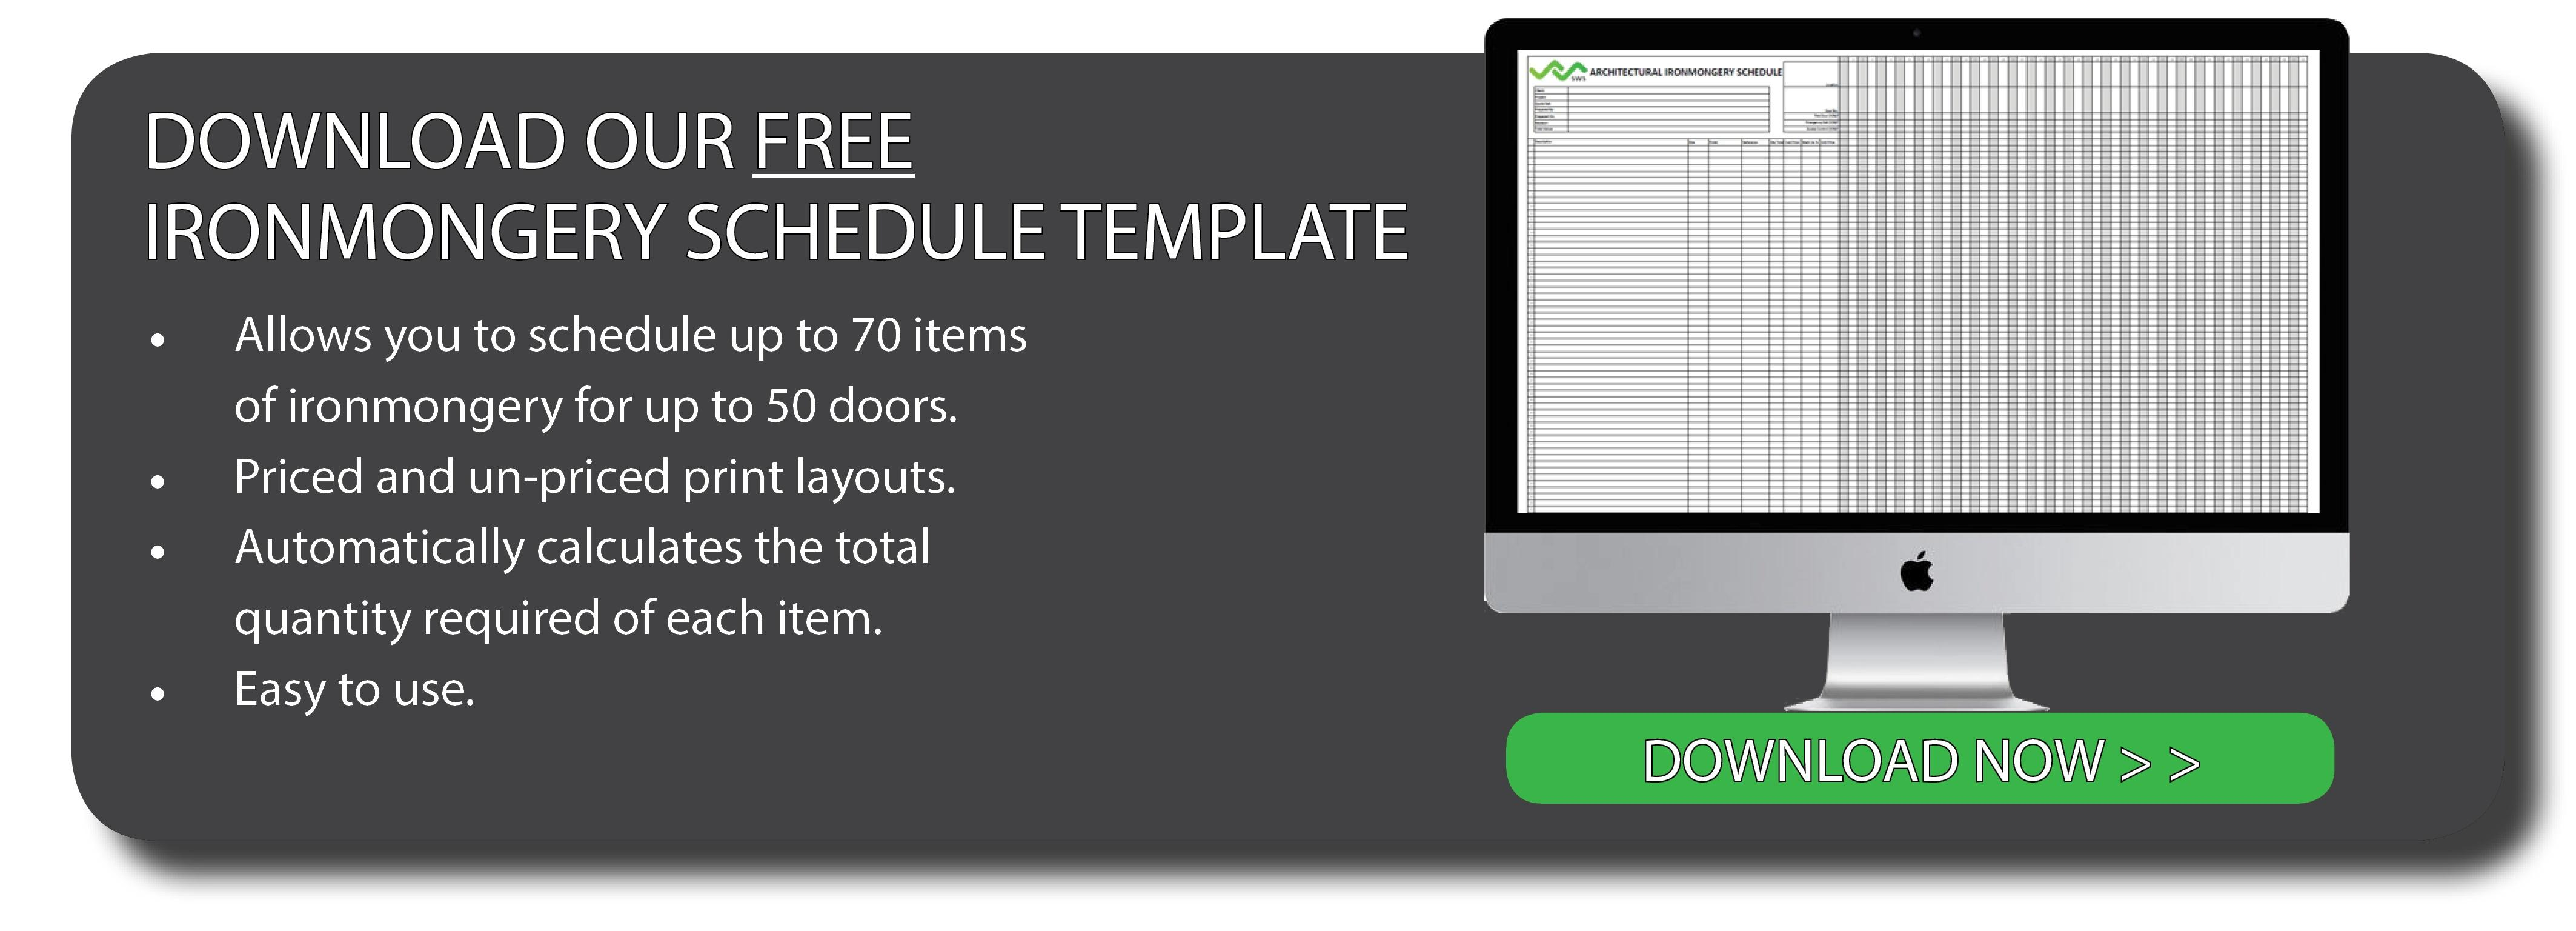 Download our FREE Ironmongery Schedule Template